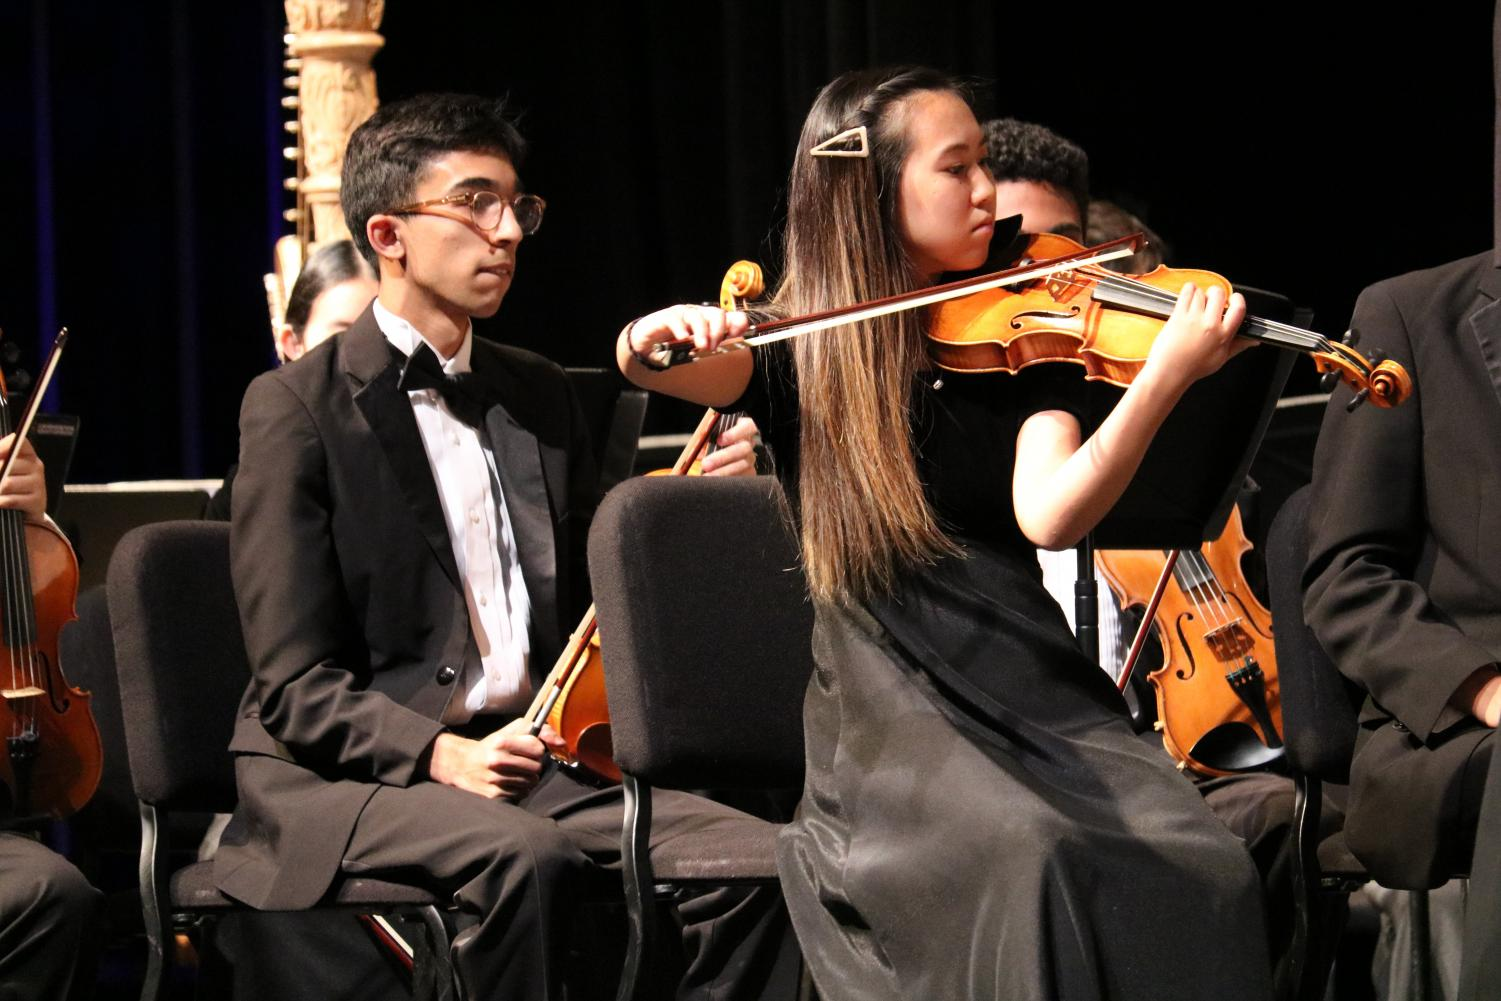 Symphony+Orchestra+Performs+at+Midwest+Clinic+Early+Preview+Concert